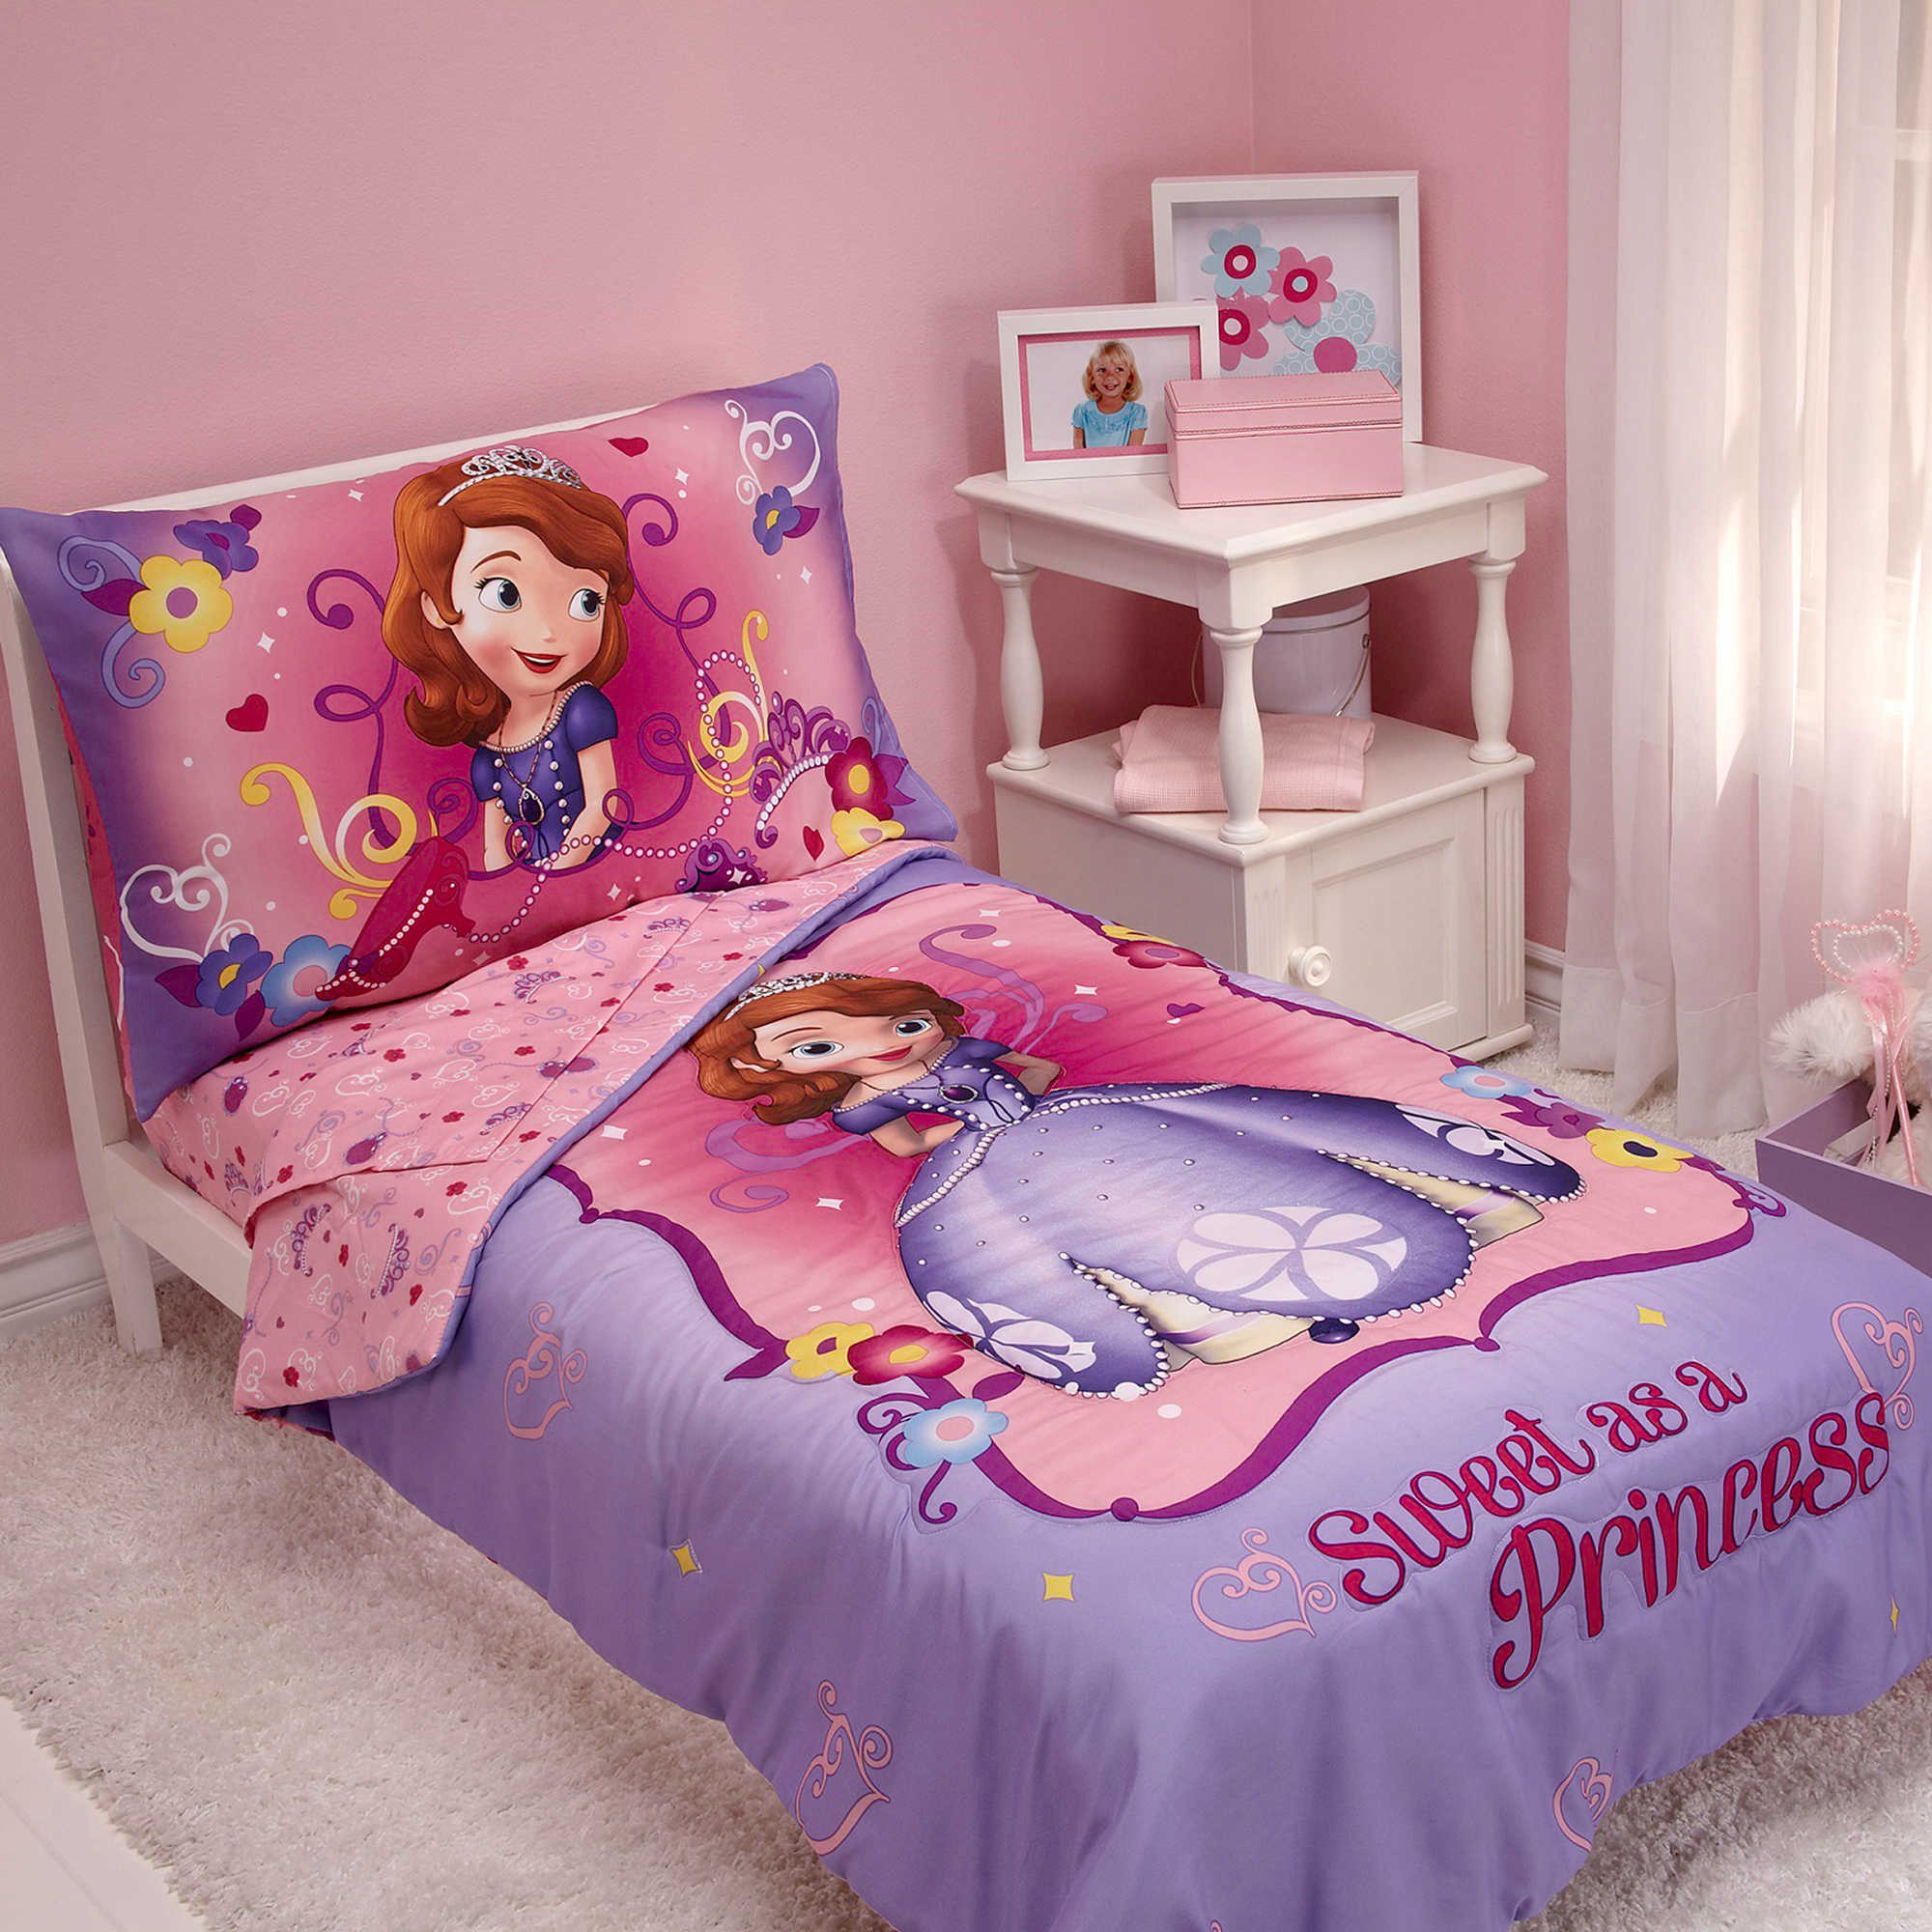 Bed sheets designs for girls - Princess Bed Sheet And Pillows Design For Girl Bedroom With Small Table And Cabinet